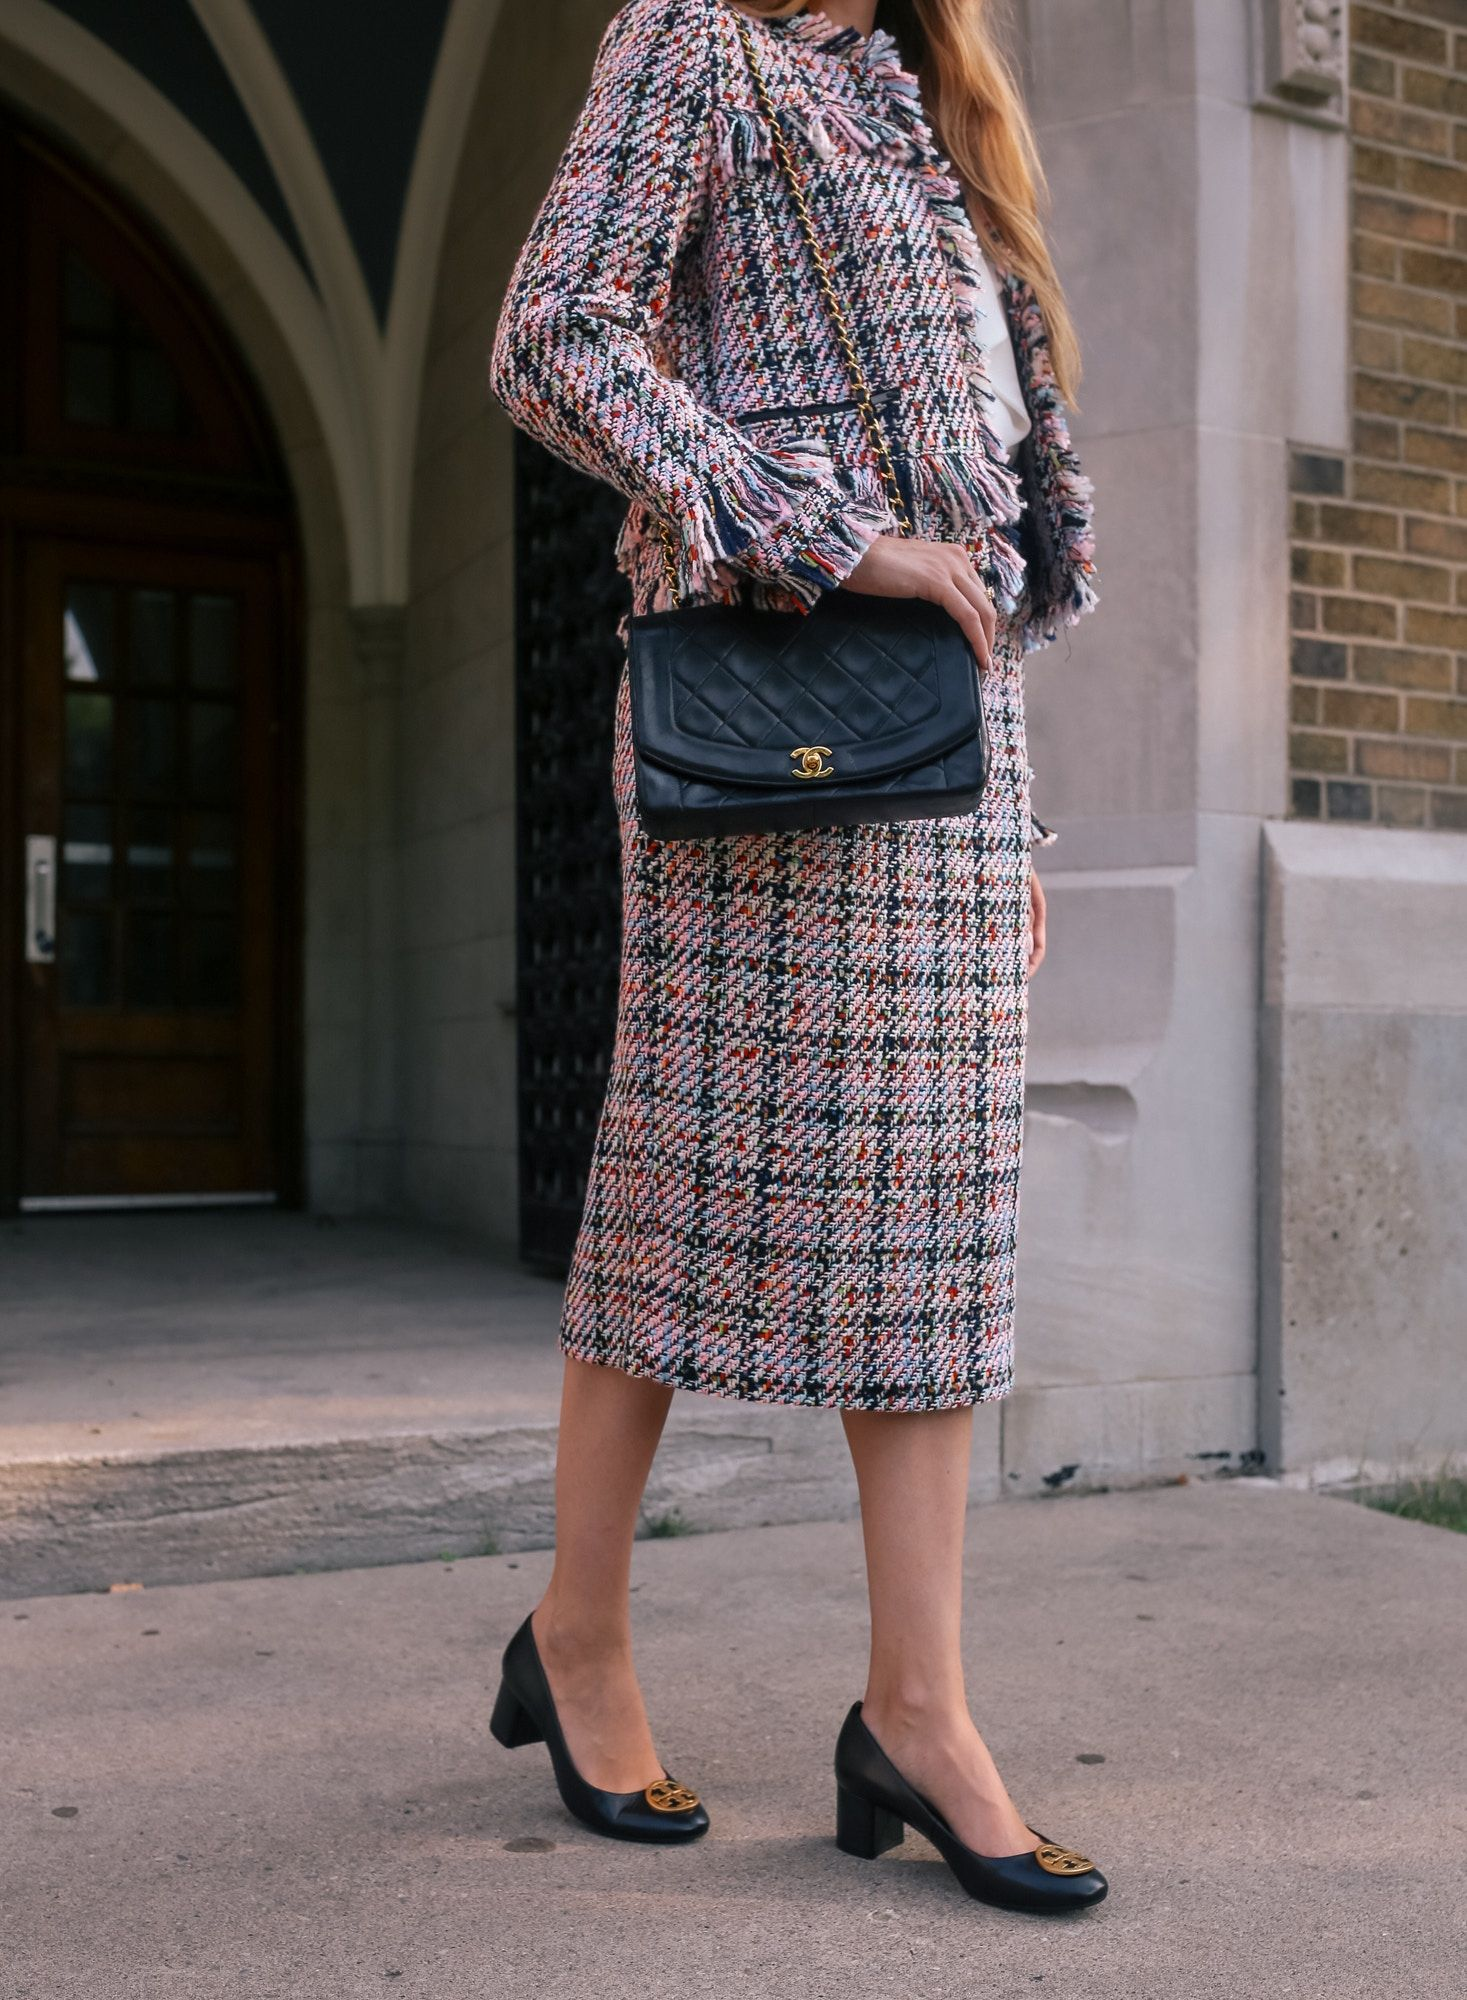 66c97868df halogen tweed midi skirt and jacket with Chanel bag | Outfit ideas ...